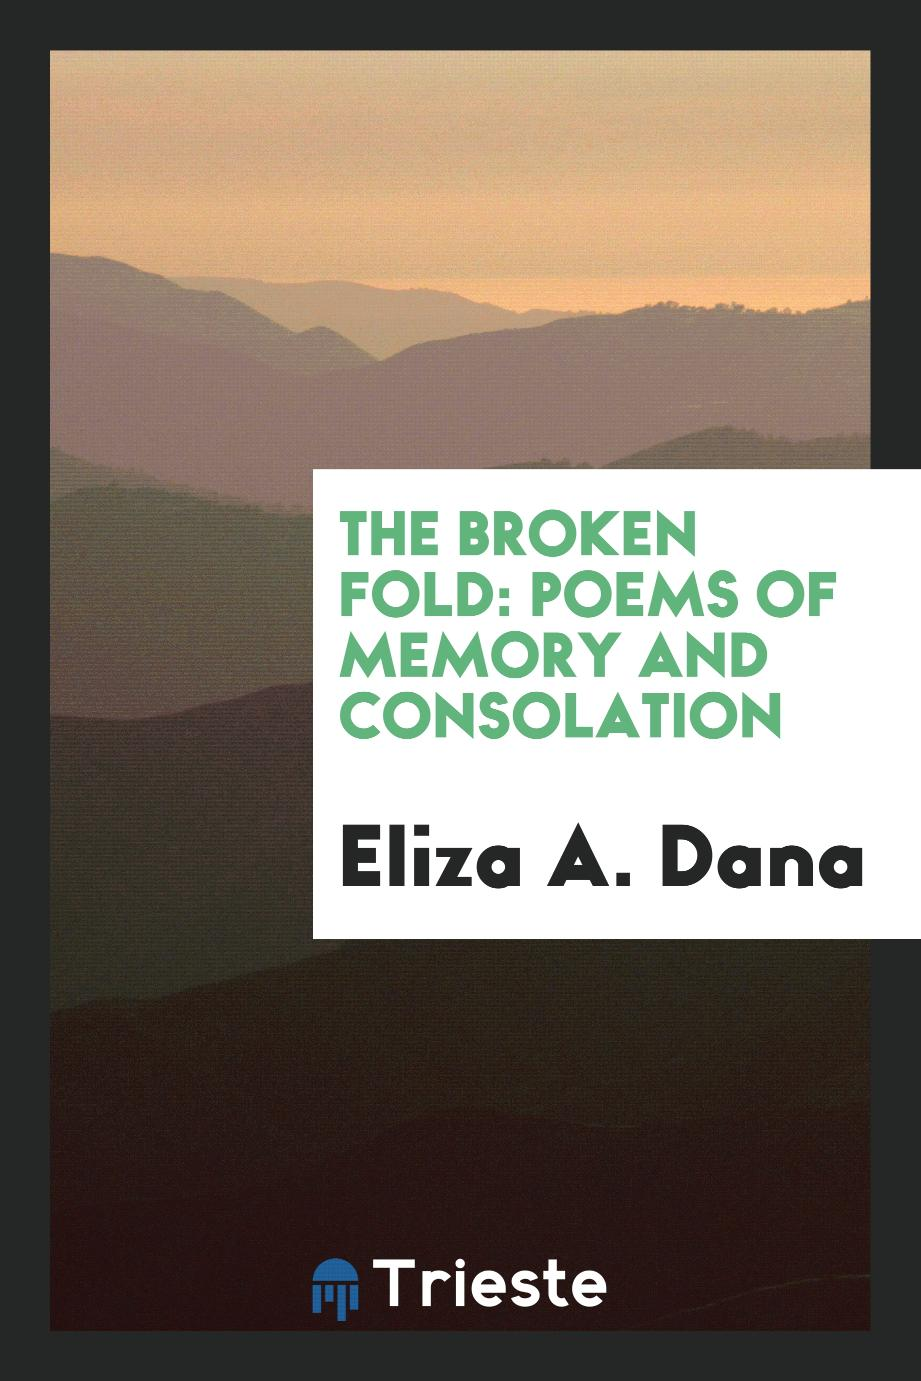 The Broken Fold: Poems of Memory and Consolation